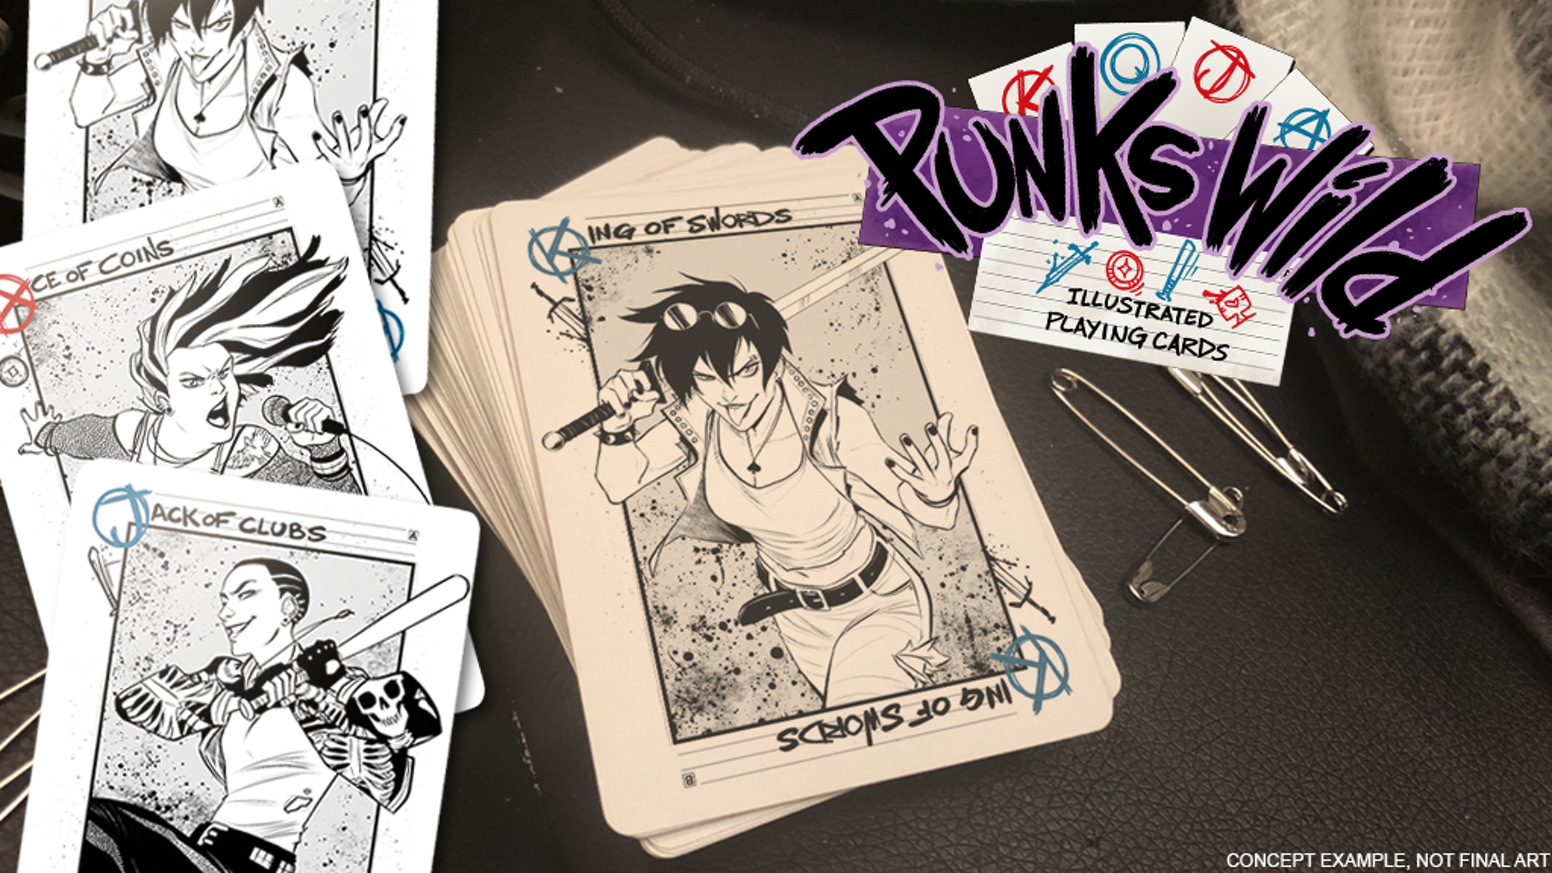 A full set of Poker-style playing cards featuring unique punk girl characters and art.